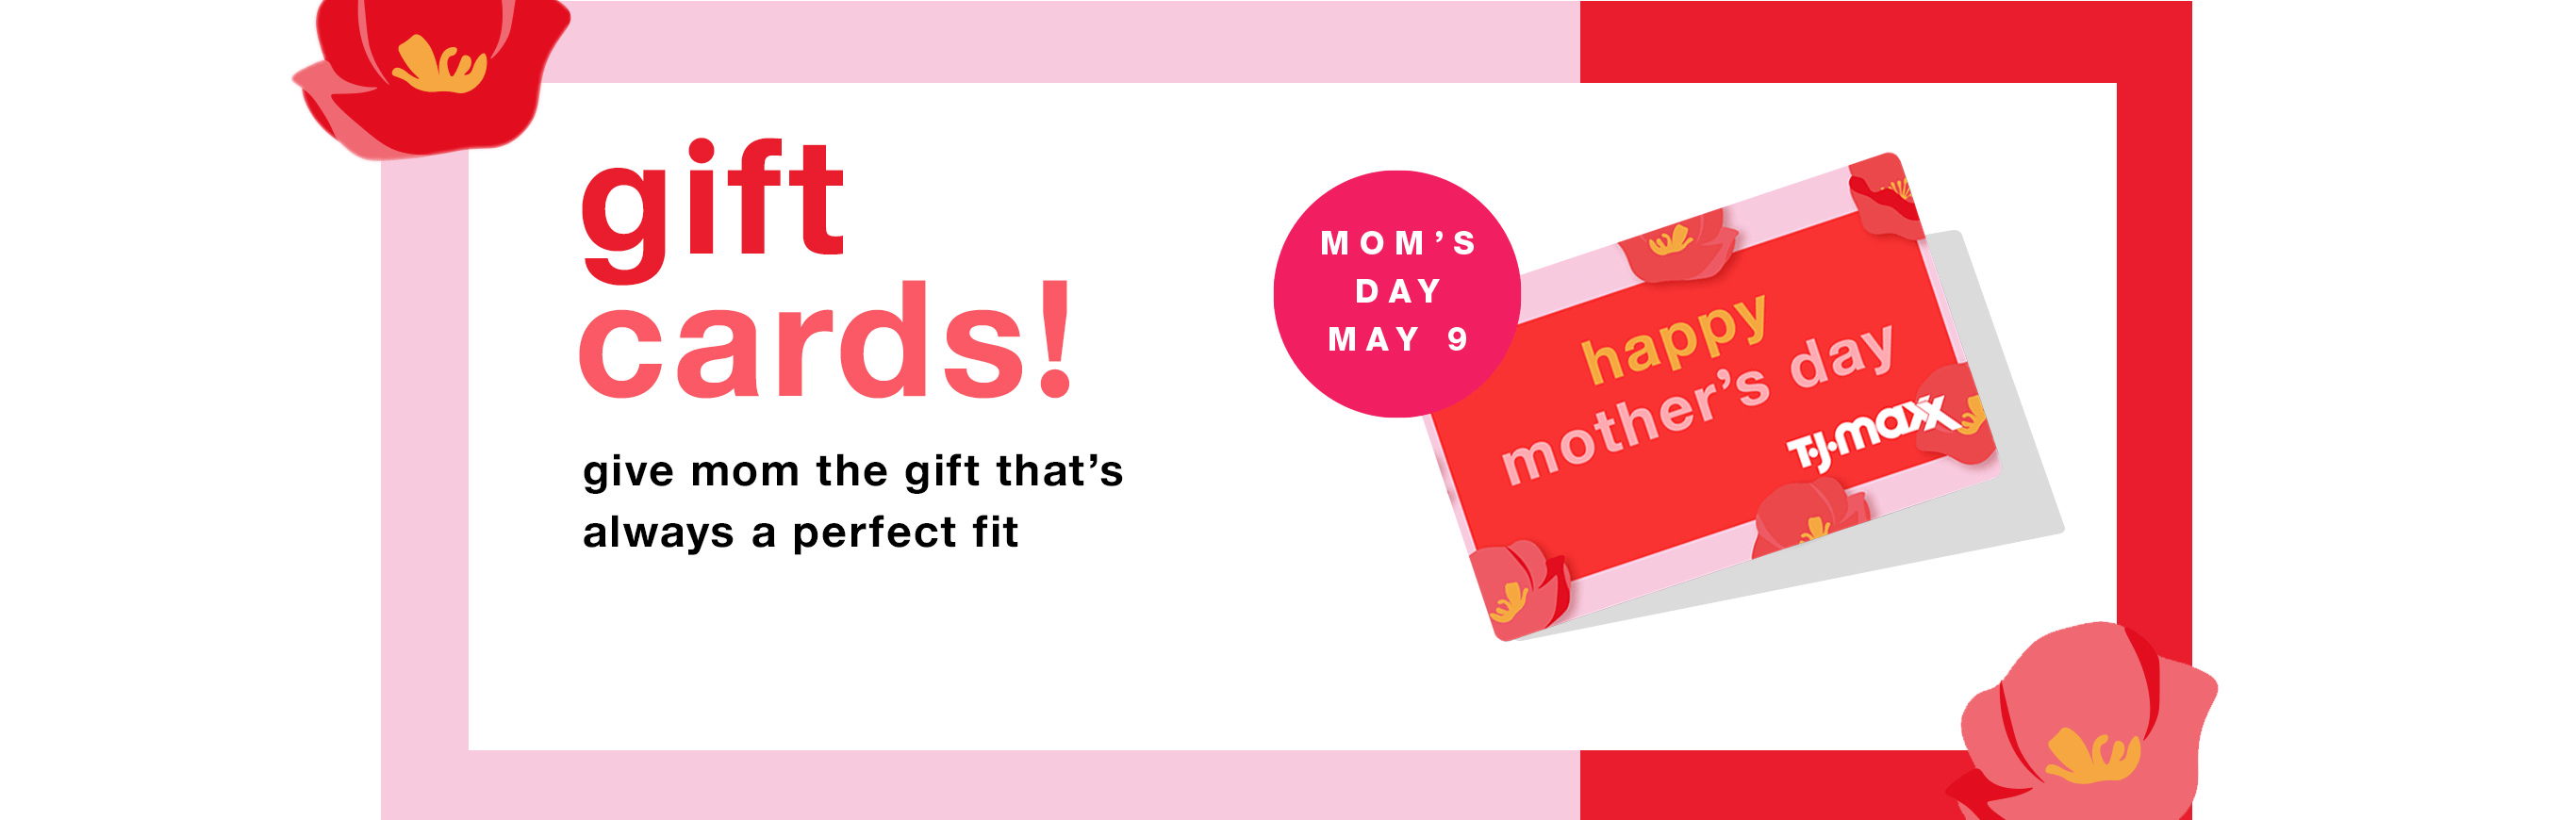 Gift Cards! Give Mom the Gift That's Always a Perfect Fit